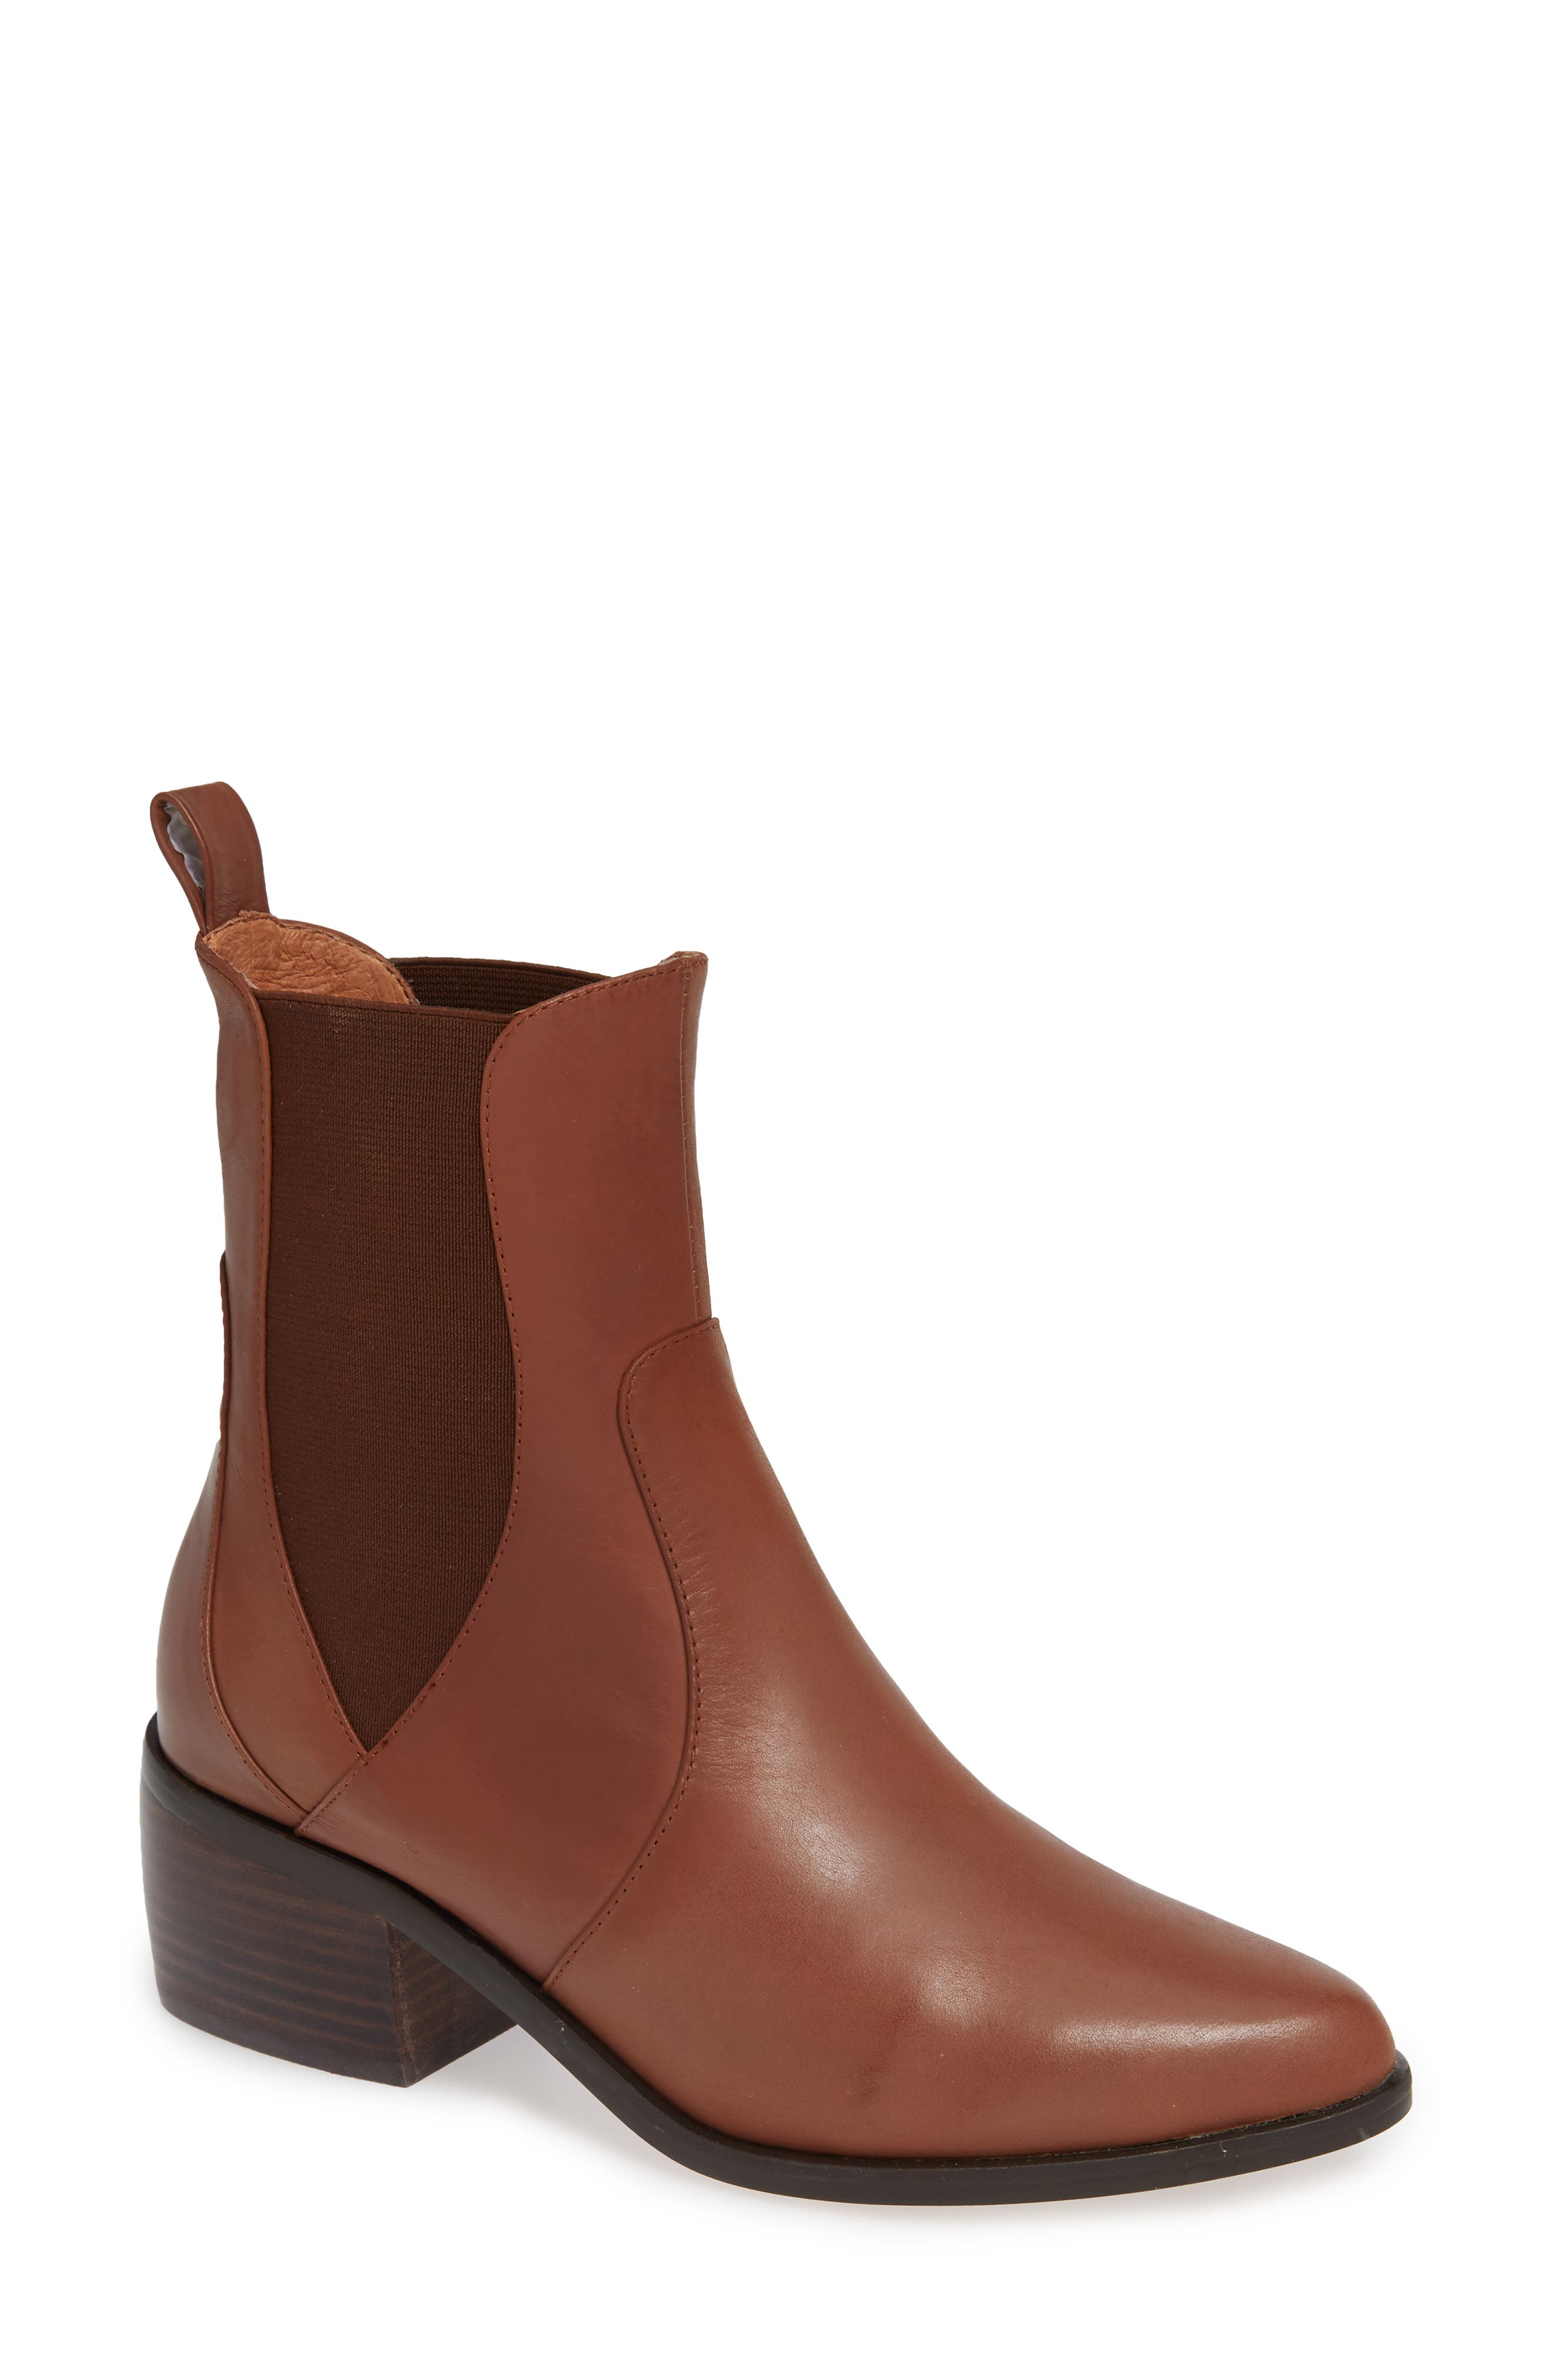 Genesis Bootie,                             Main thumbnail 1, color,                             TAN LEATHER